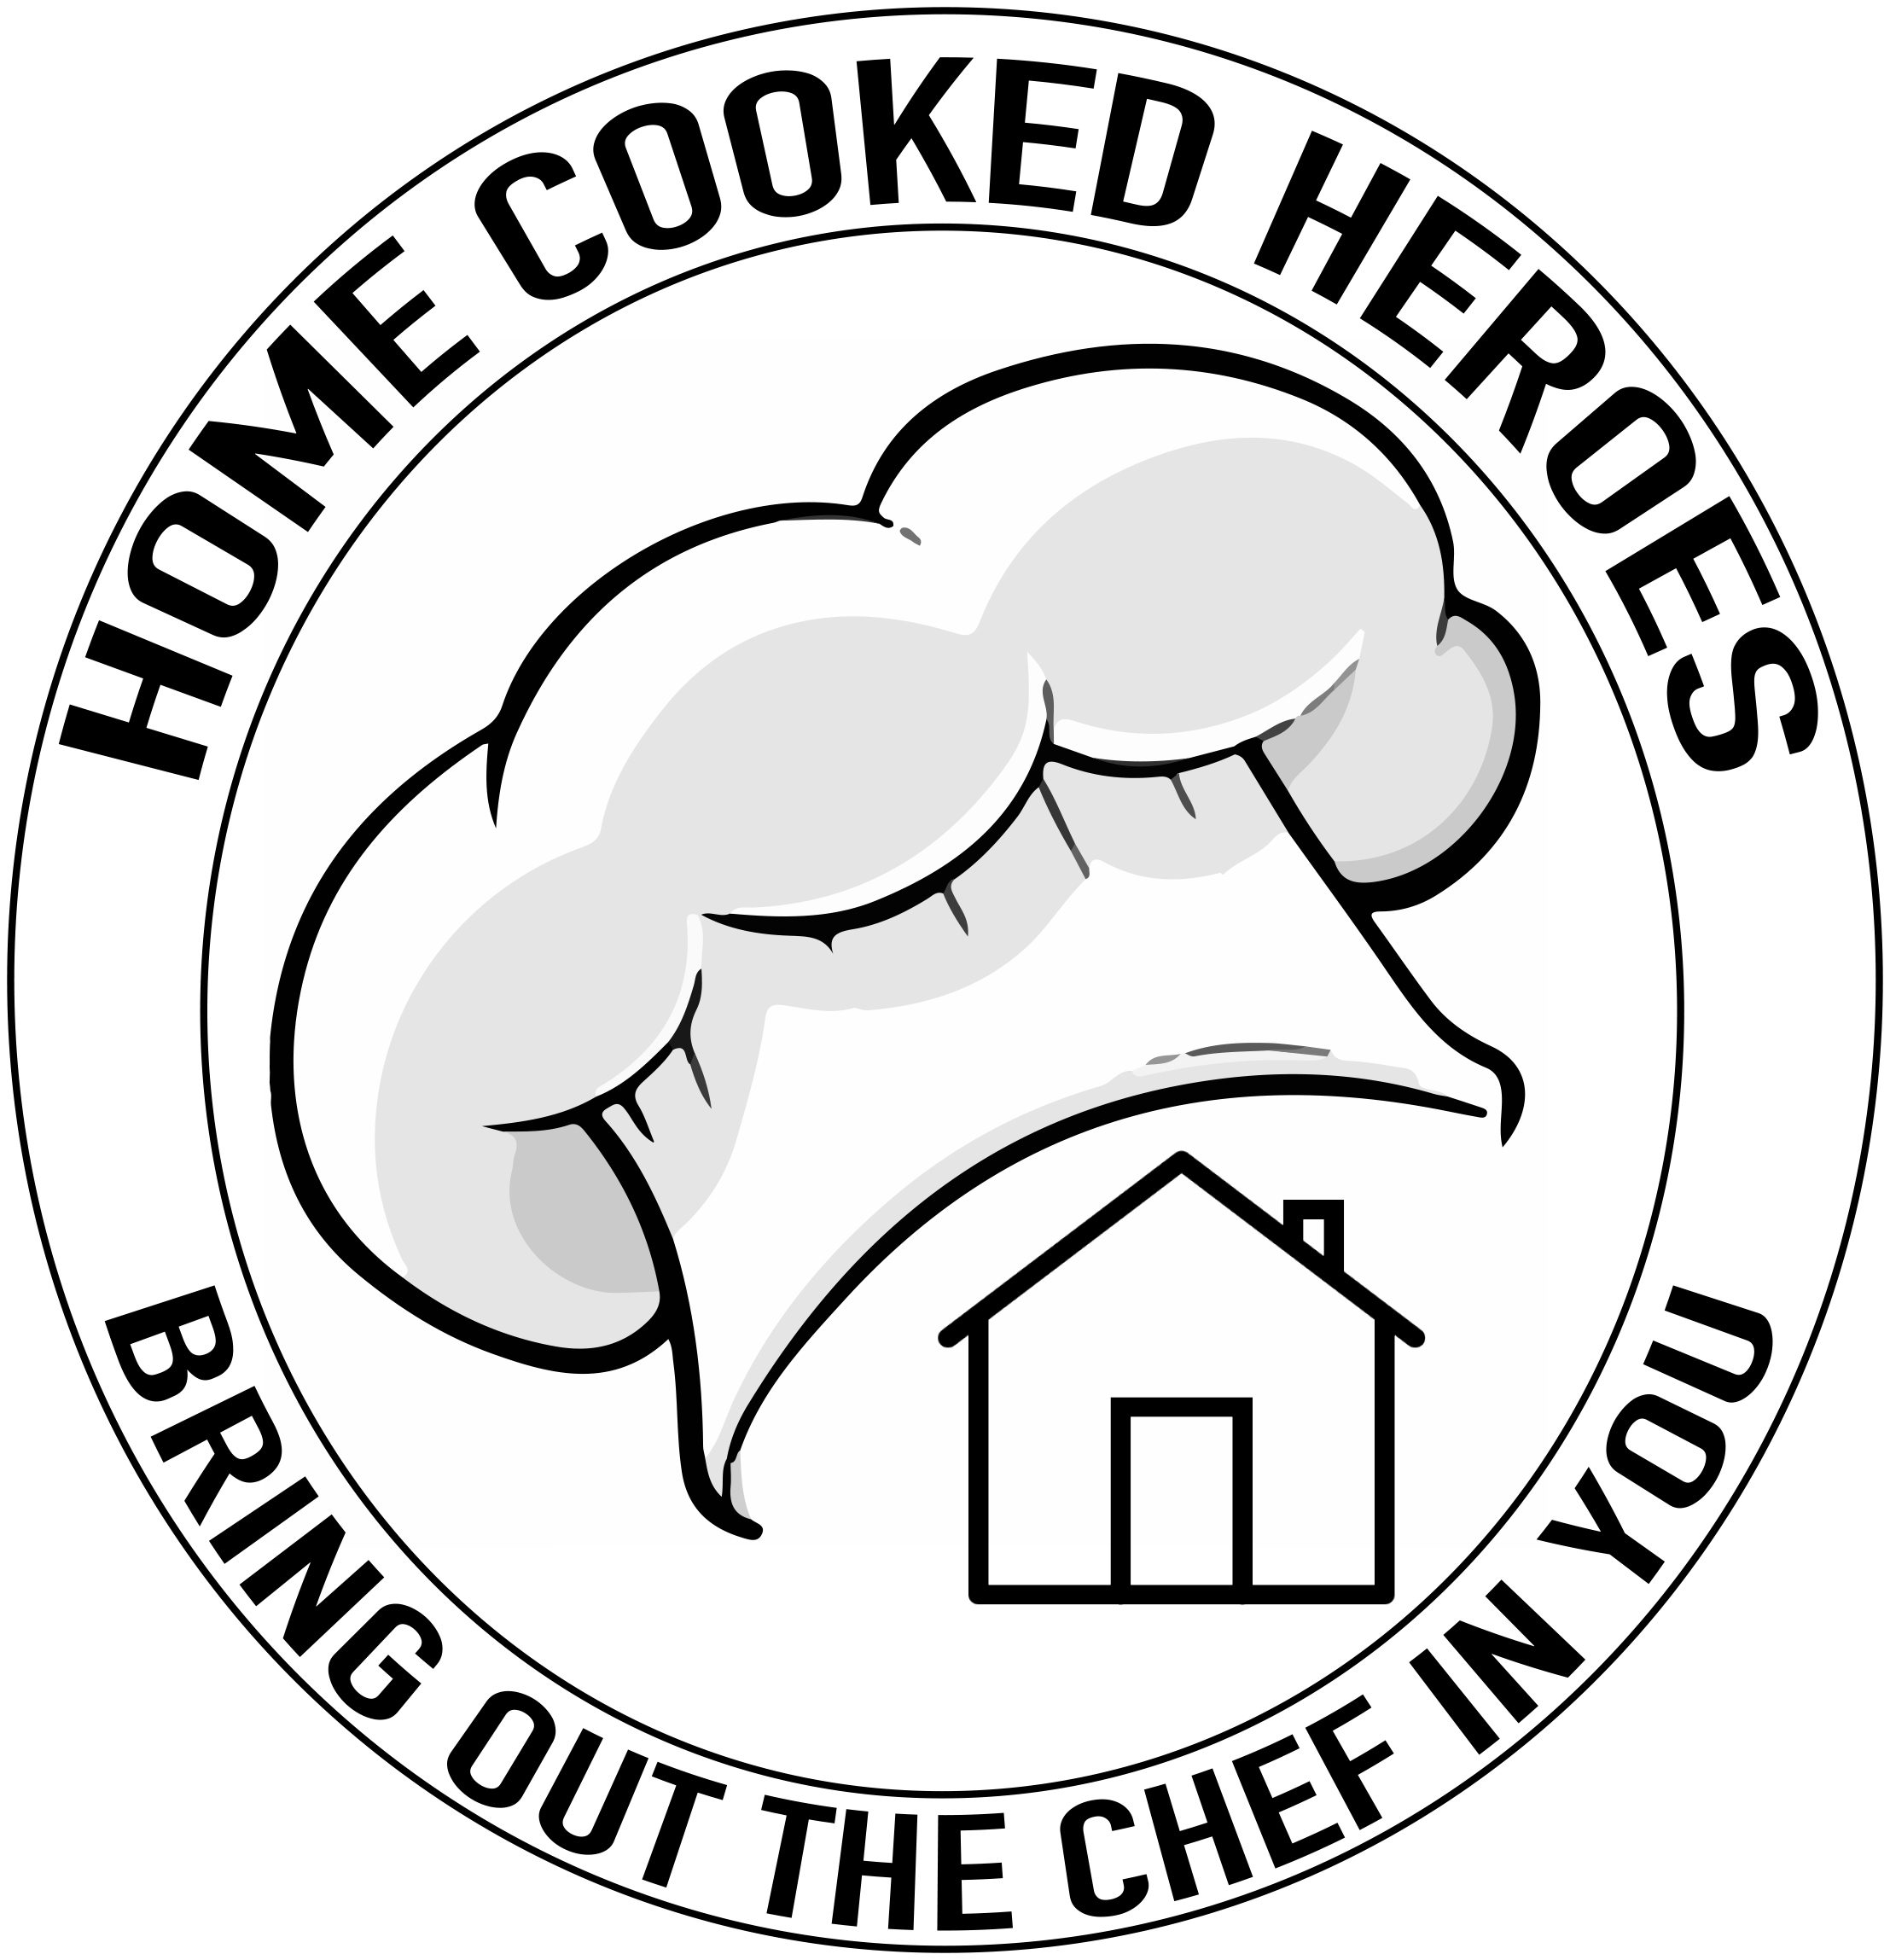 Home Cooked Heroes